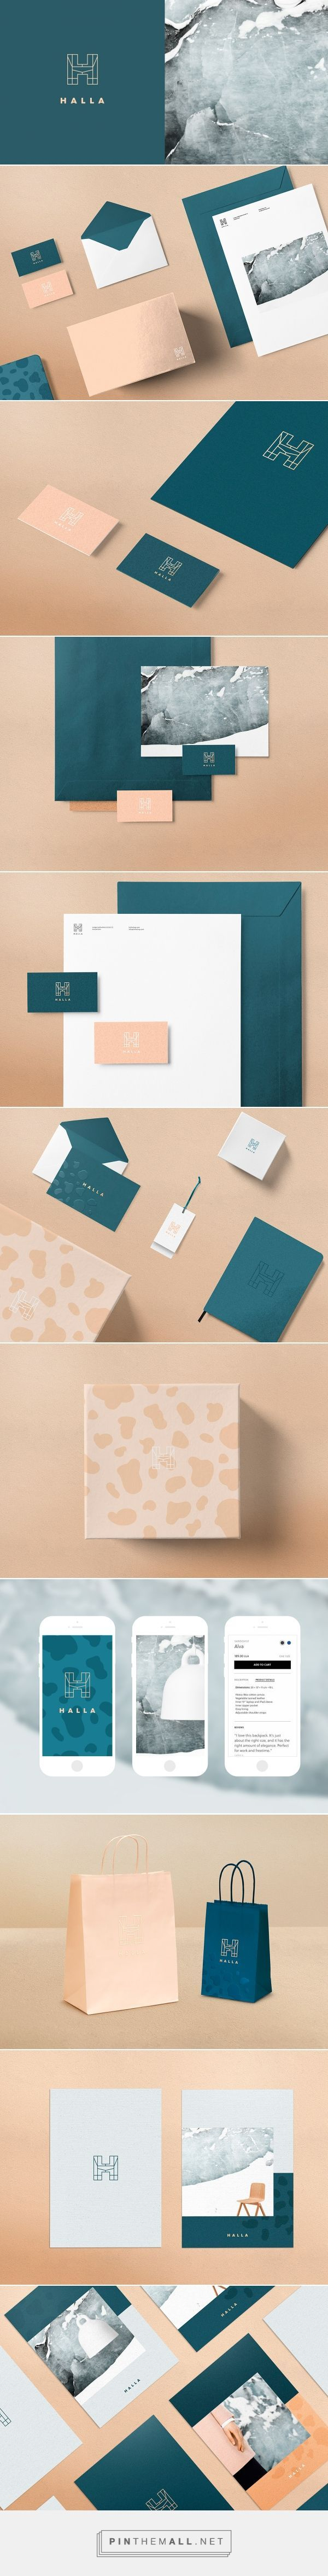 Halla Fashion and Furniture Shop Branding by Tiia Vahla   Fivestar Branding Agency – Design and Branding Agency & Curated Inspiration Gallery